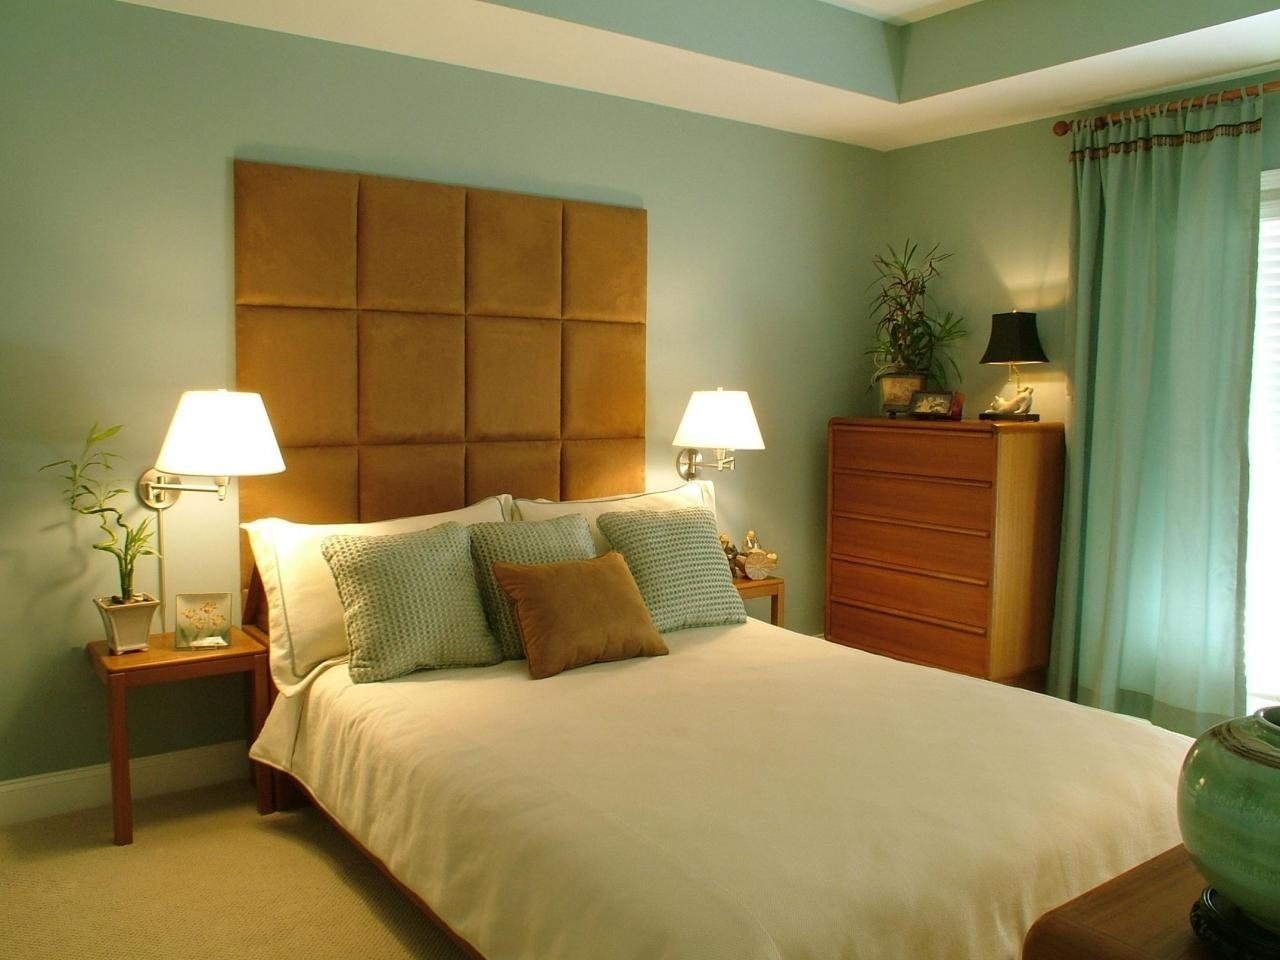 10 Most Recommended Wall Color Ideas For Bedroom house painting designs and colors tag accent wall colors for 2021